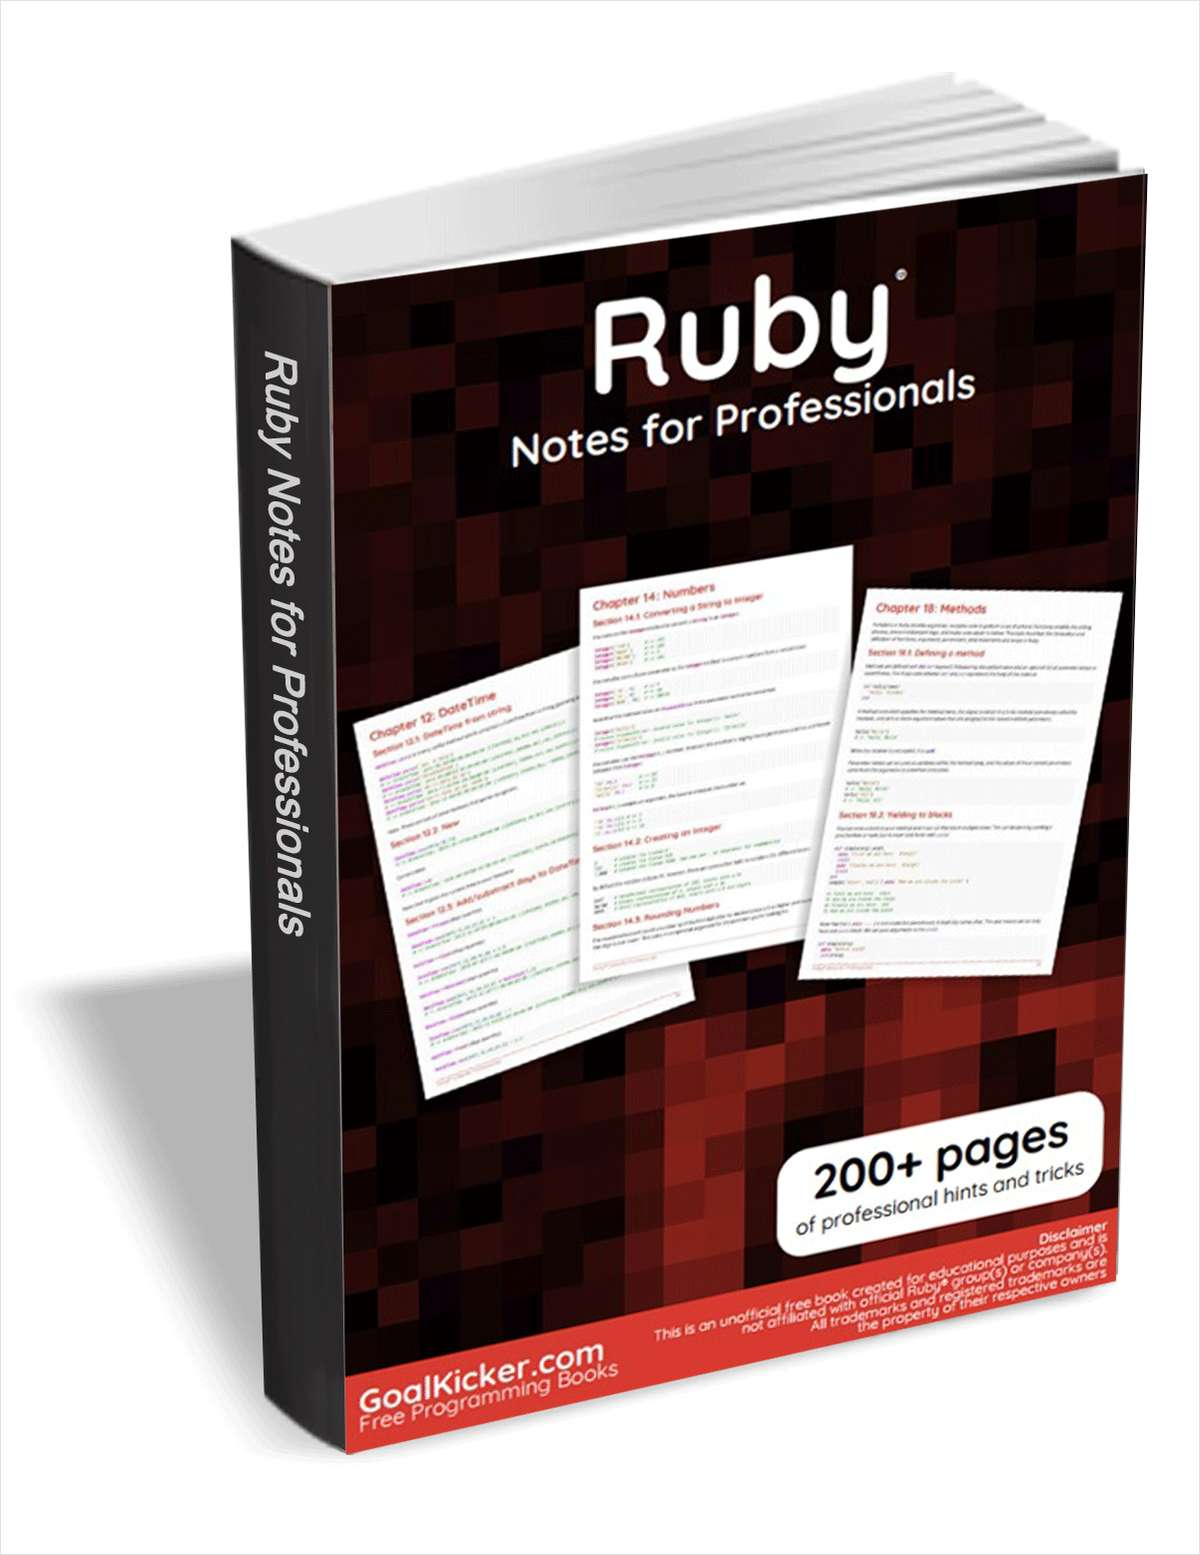 Ruby Notes for Professionals